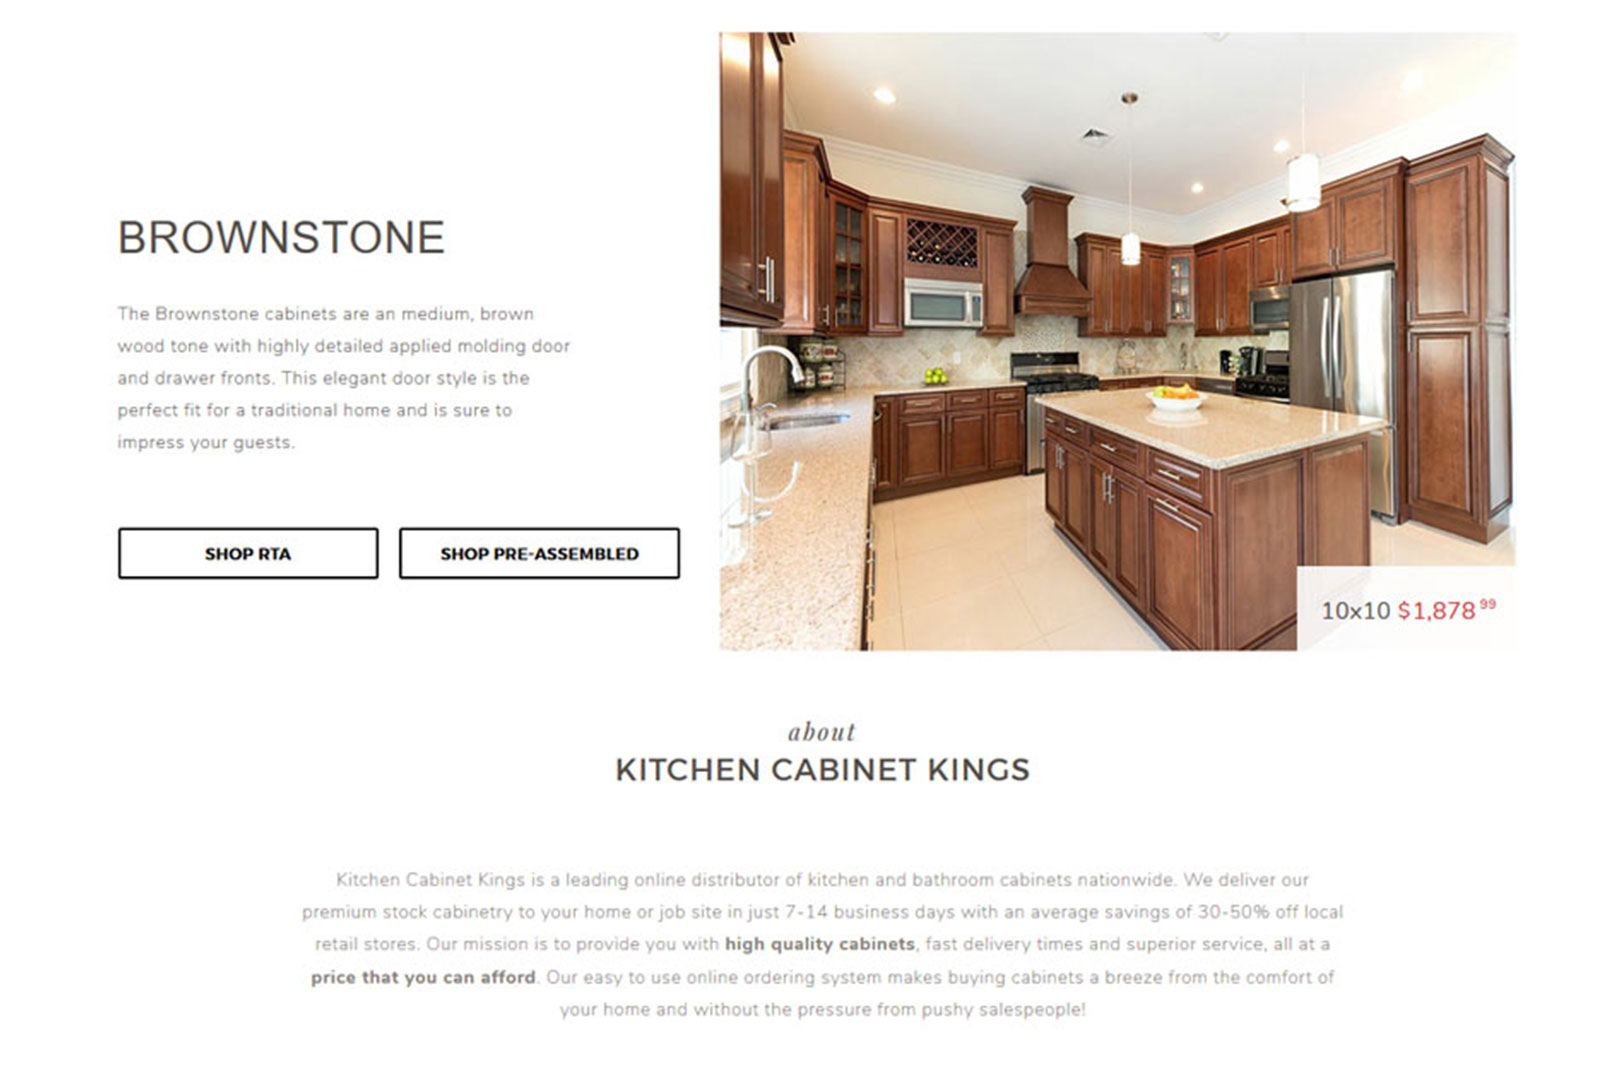 eCommerce Website | Kitchen Cabinet Kings | Clemson Web Design on online salon design, online knife design, online fashion design, online garden design, online yoga, online home design, online stationery design, online fundraising, online landscape design, online interior design, online greeting card design, online deck design, online graphic design, online house layout design, online room design, online farm design, online bathroom design, pizza design, online project management, online clothing design,